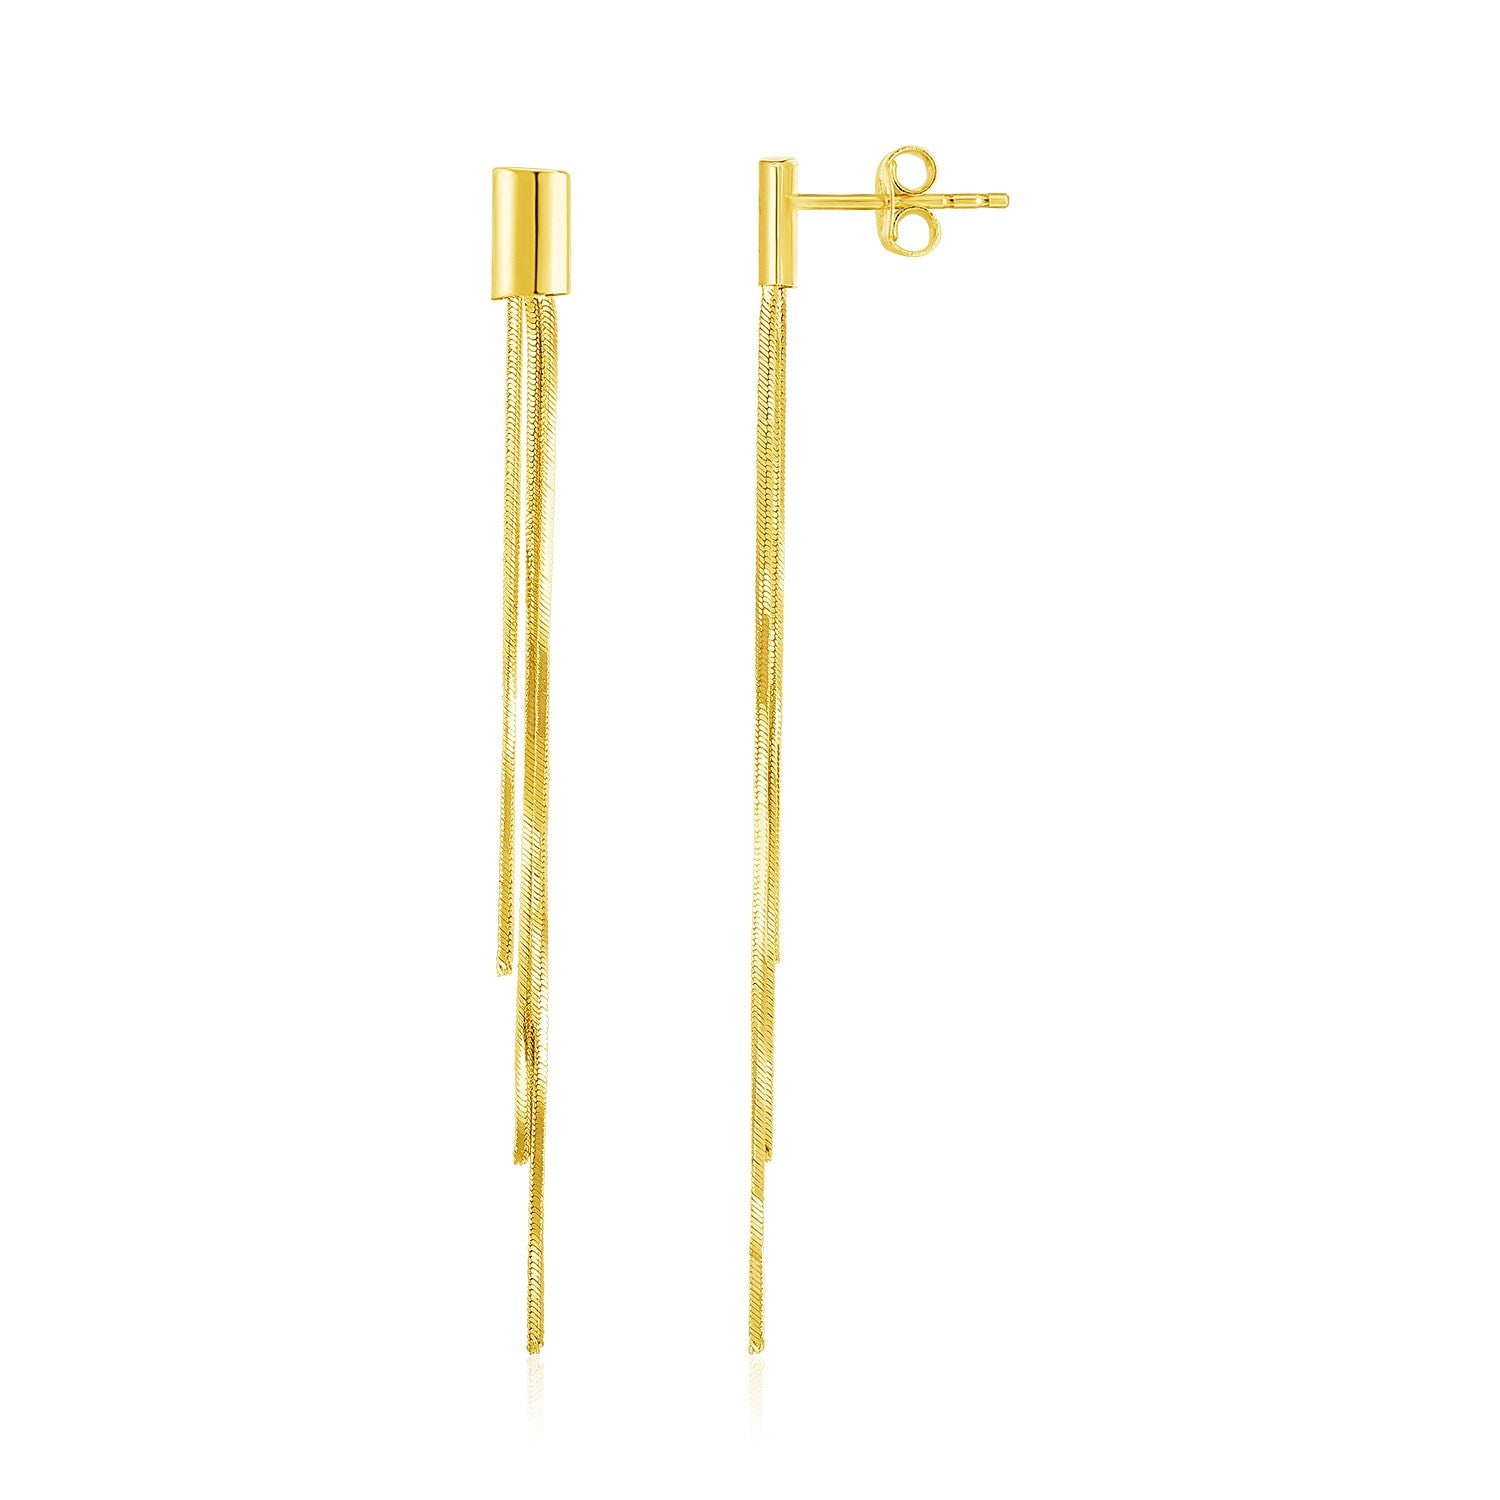 14k Yellow Gold Post Earrings with Long Chains